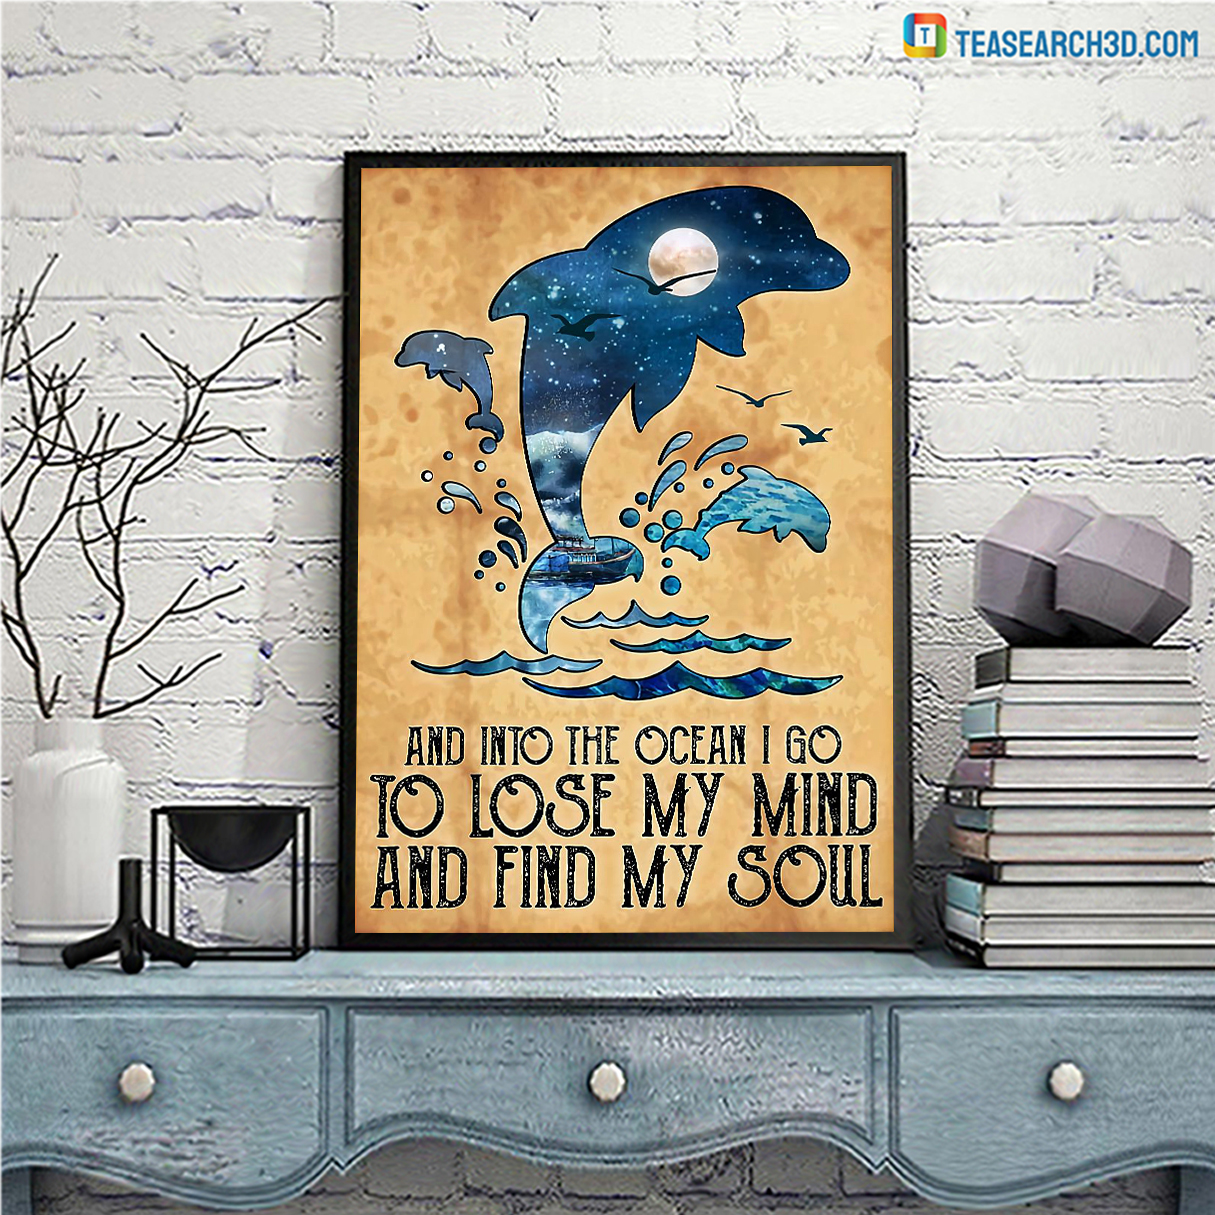 Dolphins and into the ocean I go to lose my mind and find my soul poster